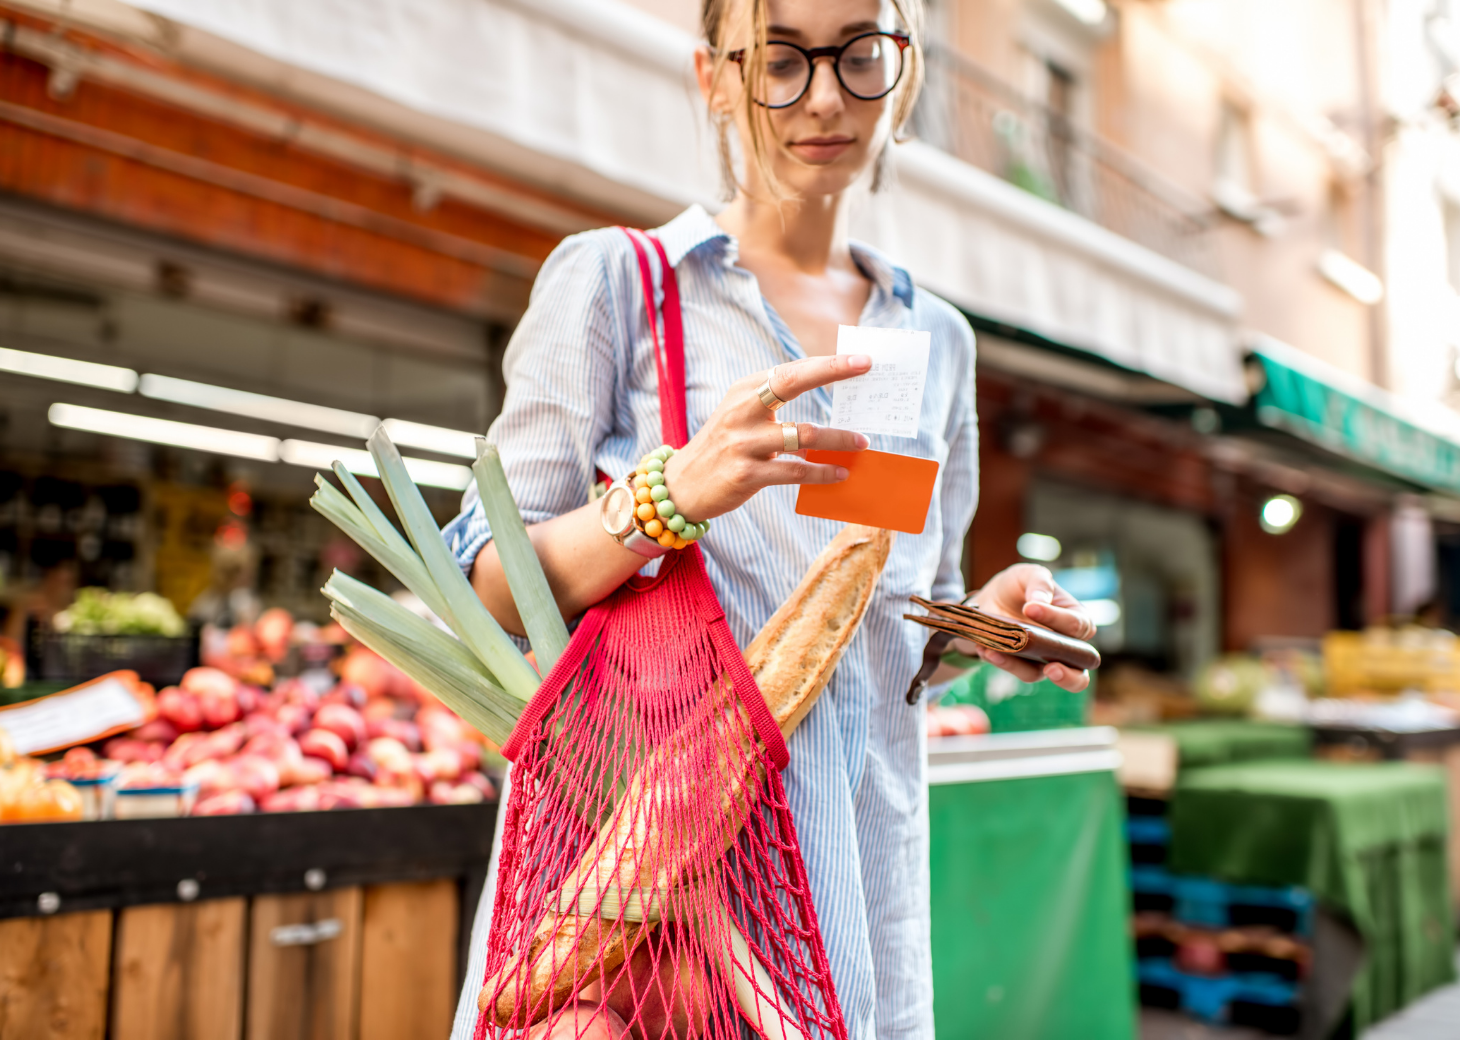 10 Ingenious Ways to Save Money on Your Groceries